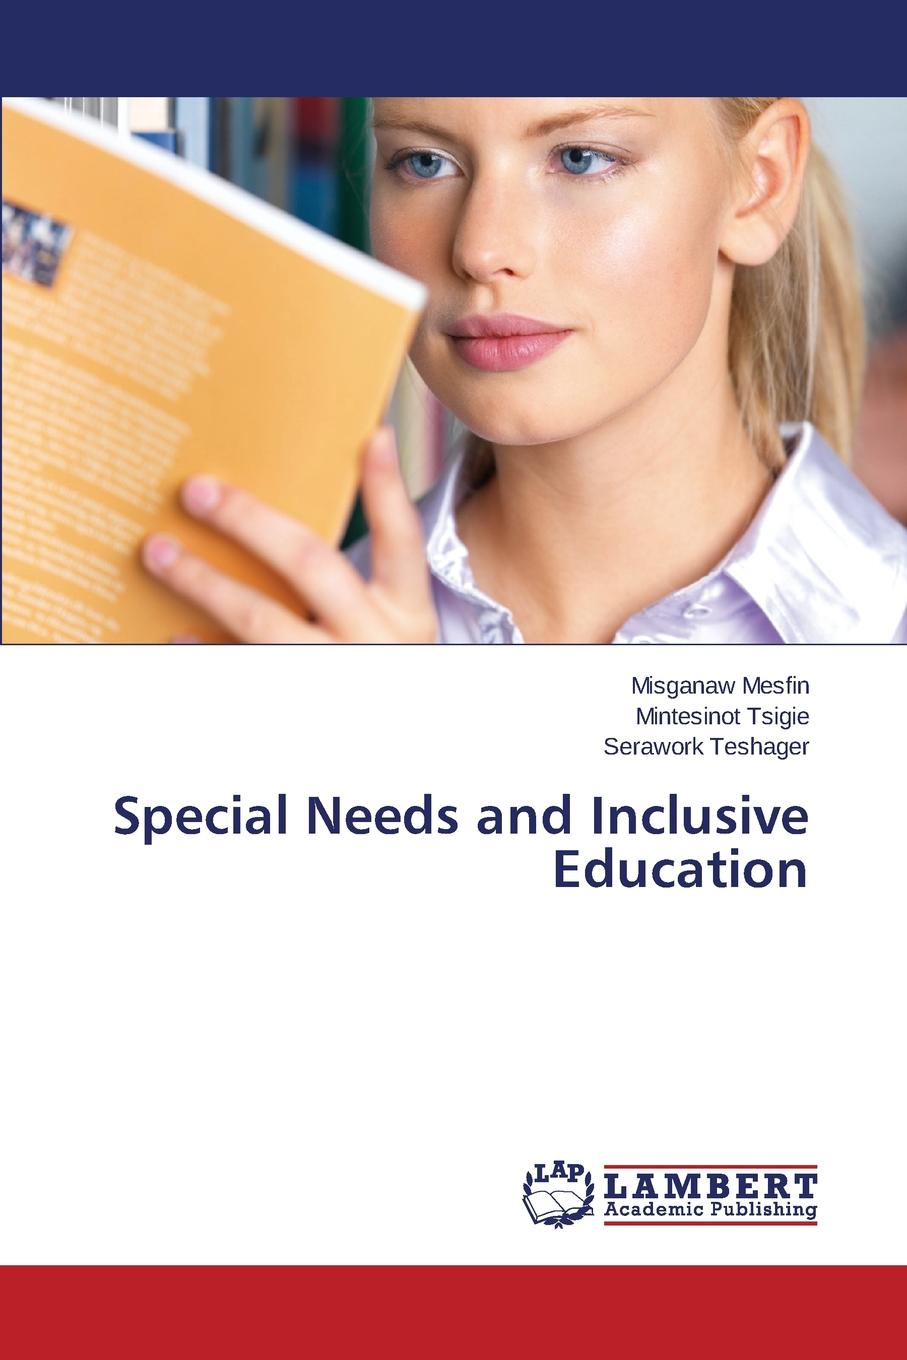 Mesfin Misganaw, Tsigie Mintesinot, Teshager Serawork Special Needs and Inclusive Education mathematics and special educational needs